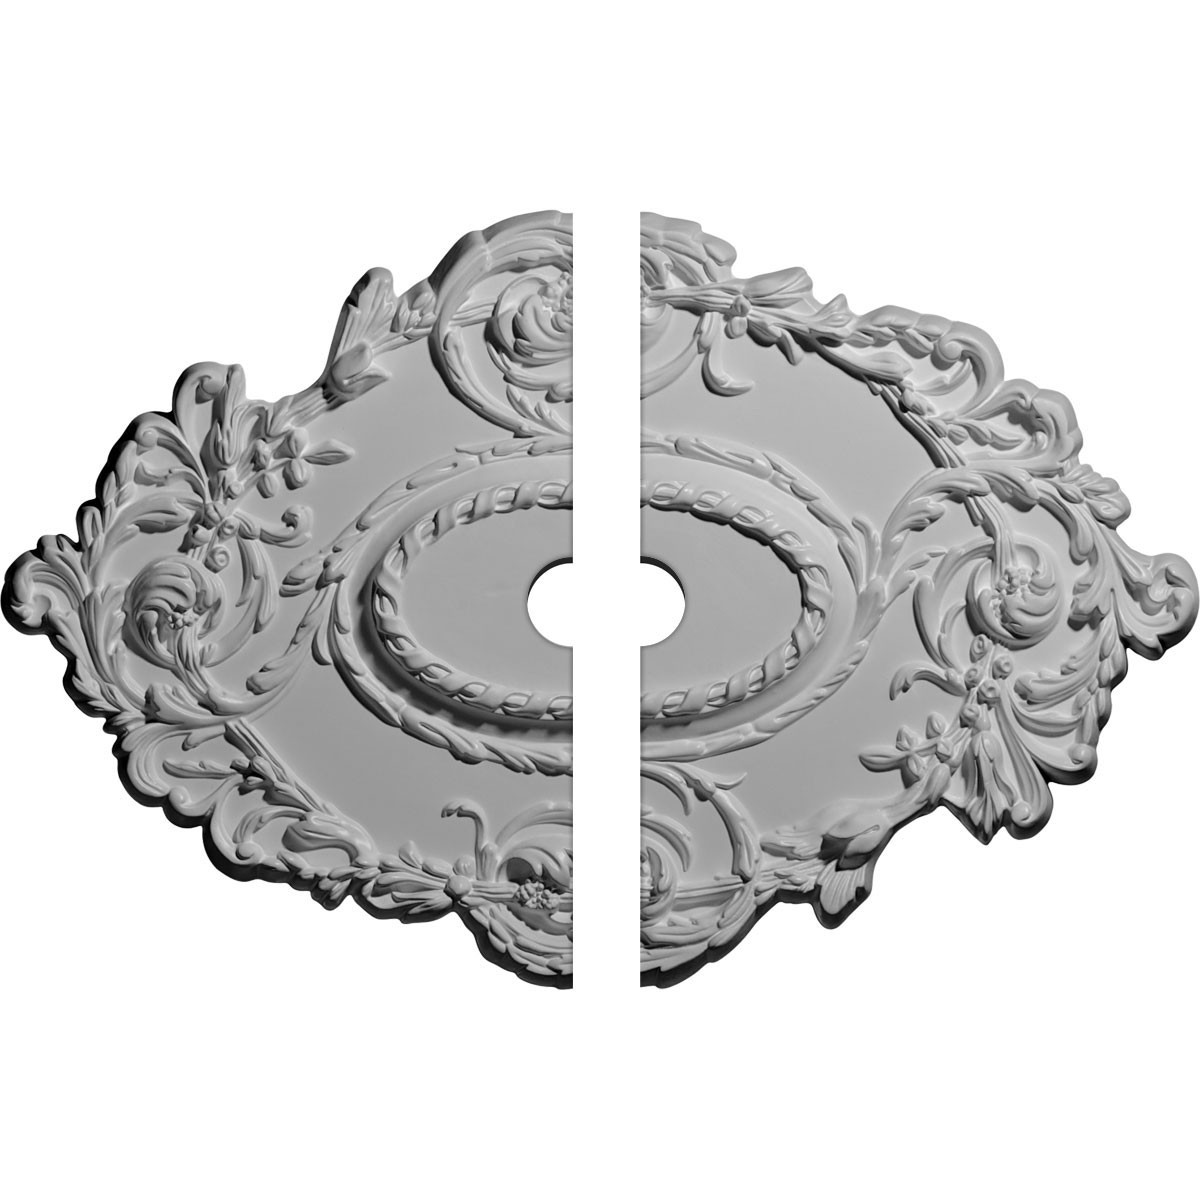 """EM-CM30KI2-02500 - 30 3/8""""W x 20 3/4""""H x 2 1/2""""ID x 1""""P Kinsley Flowing Leaf Ceiling Medallion, Two Piece (Fits Canopies up to 2 1/2"""")"""